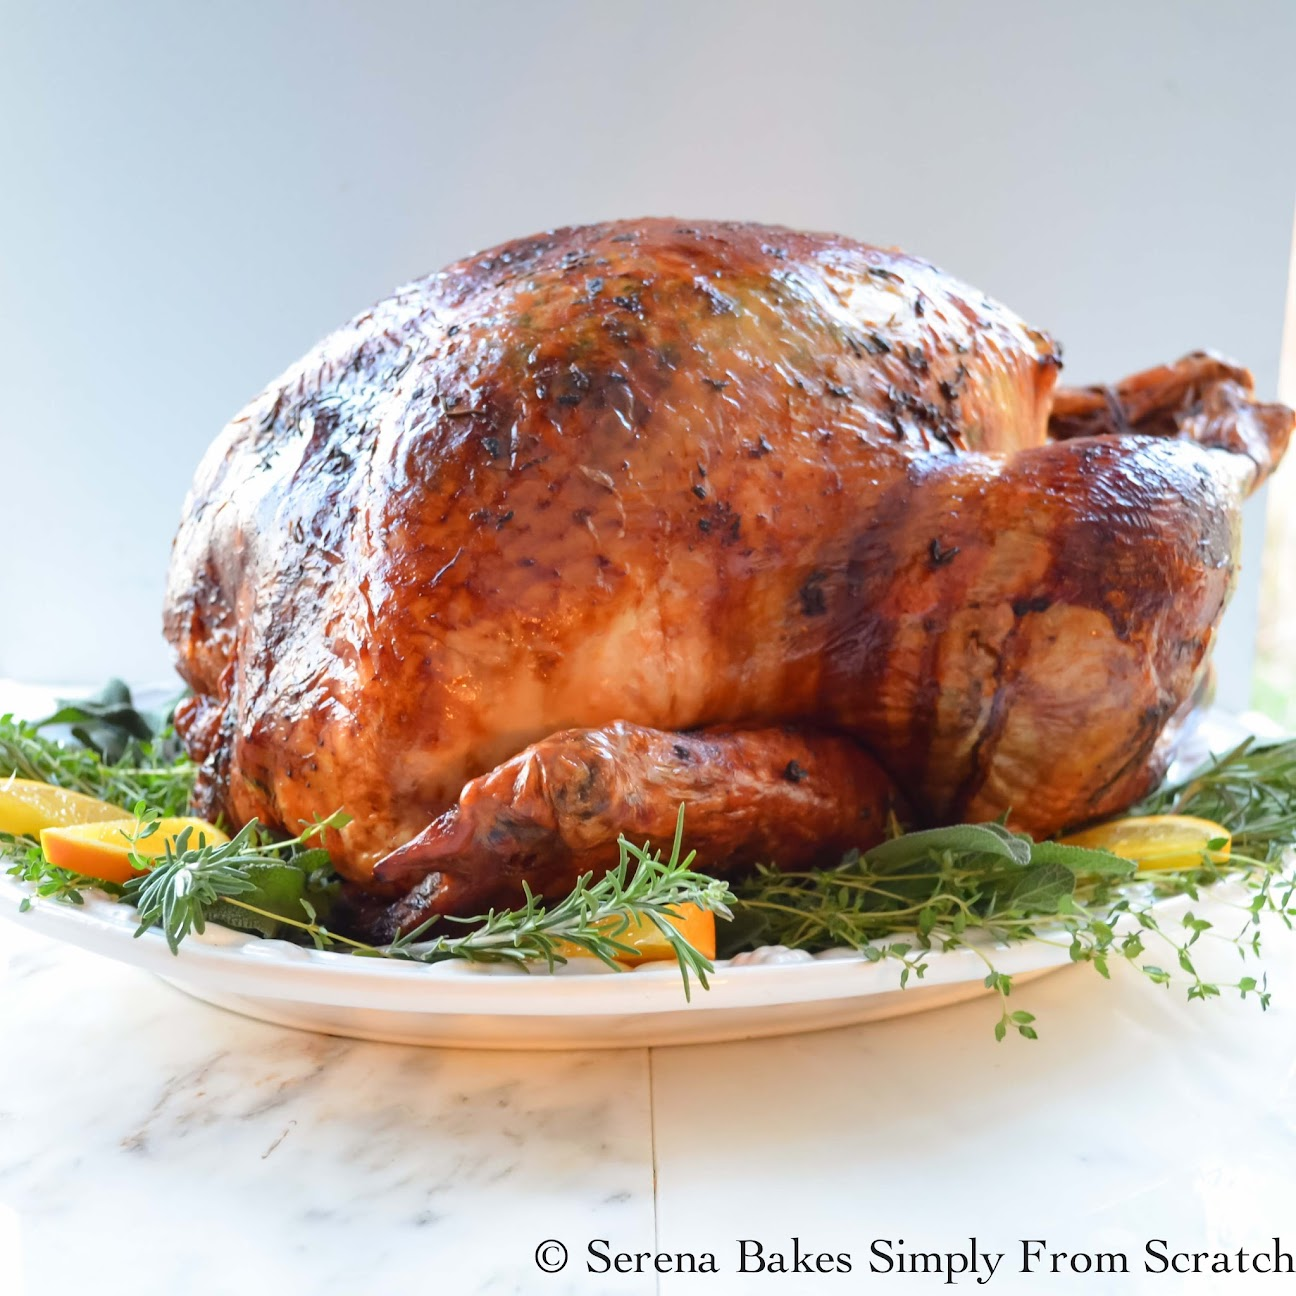 Super Moist Turkey Baked In Cheesecloth and White Wine is a Thanksgiving Must Make!